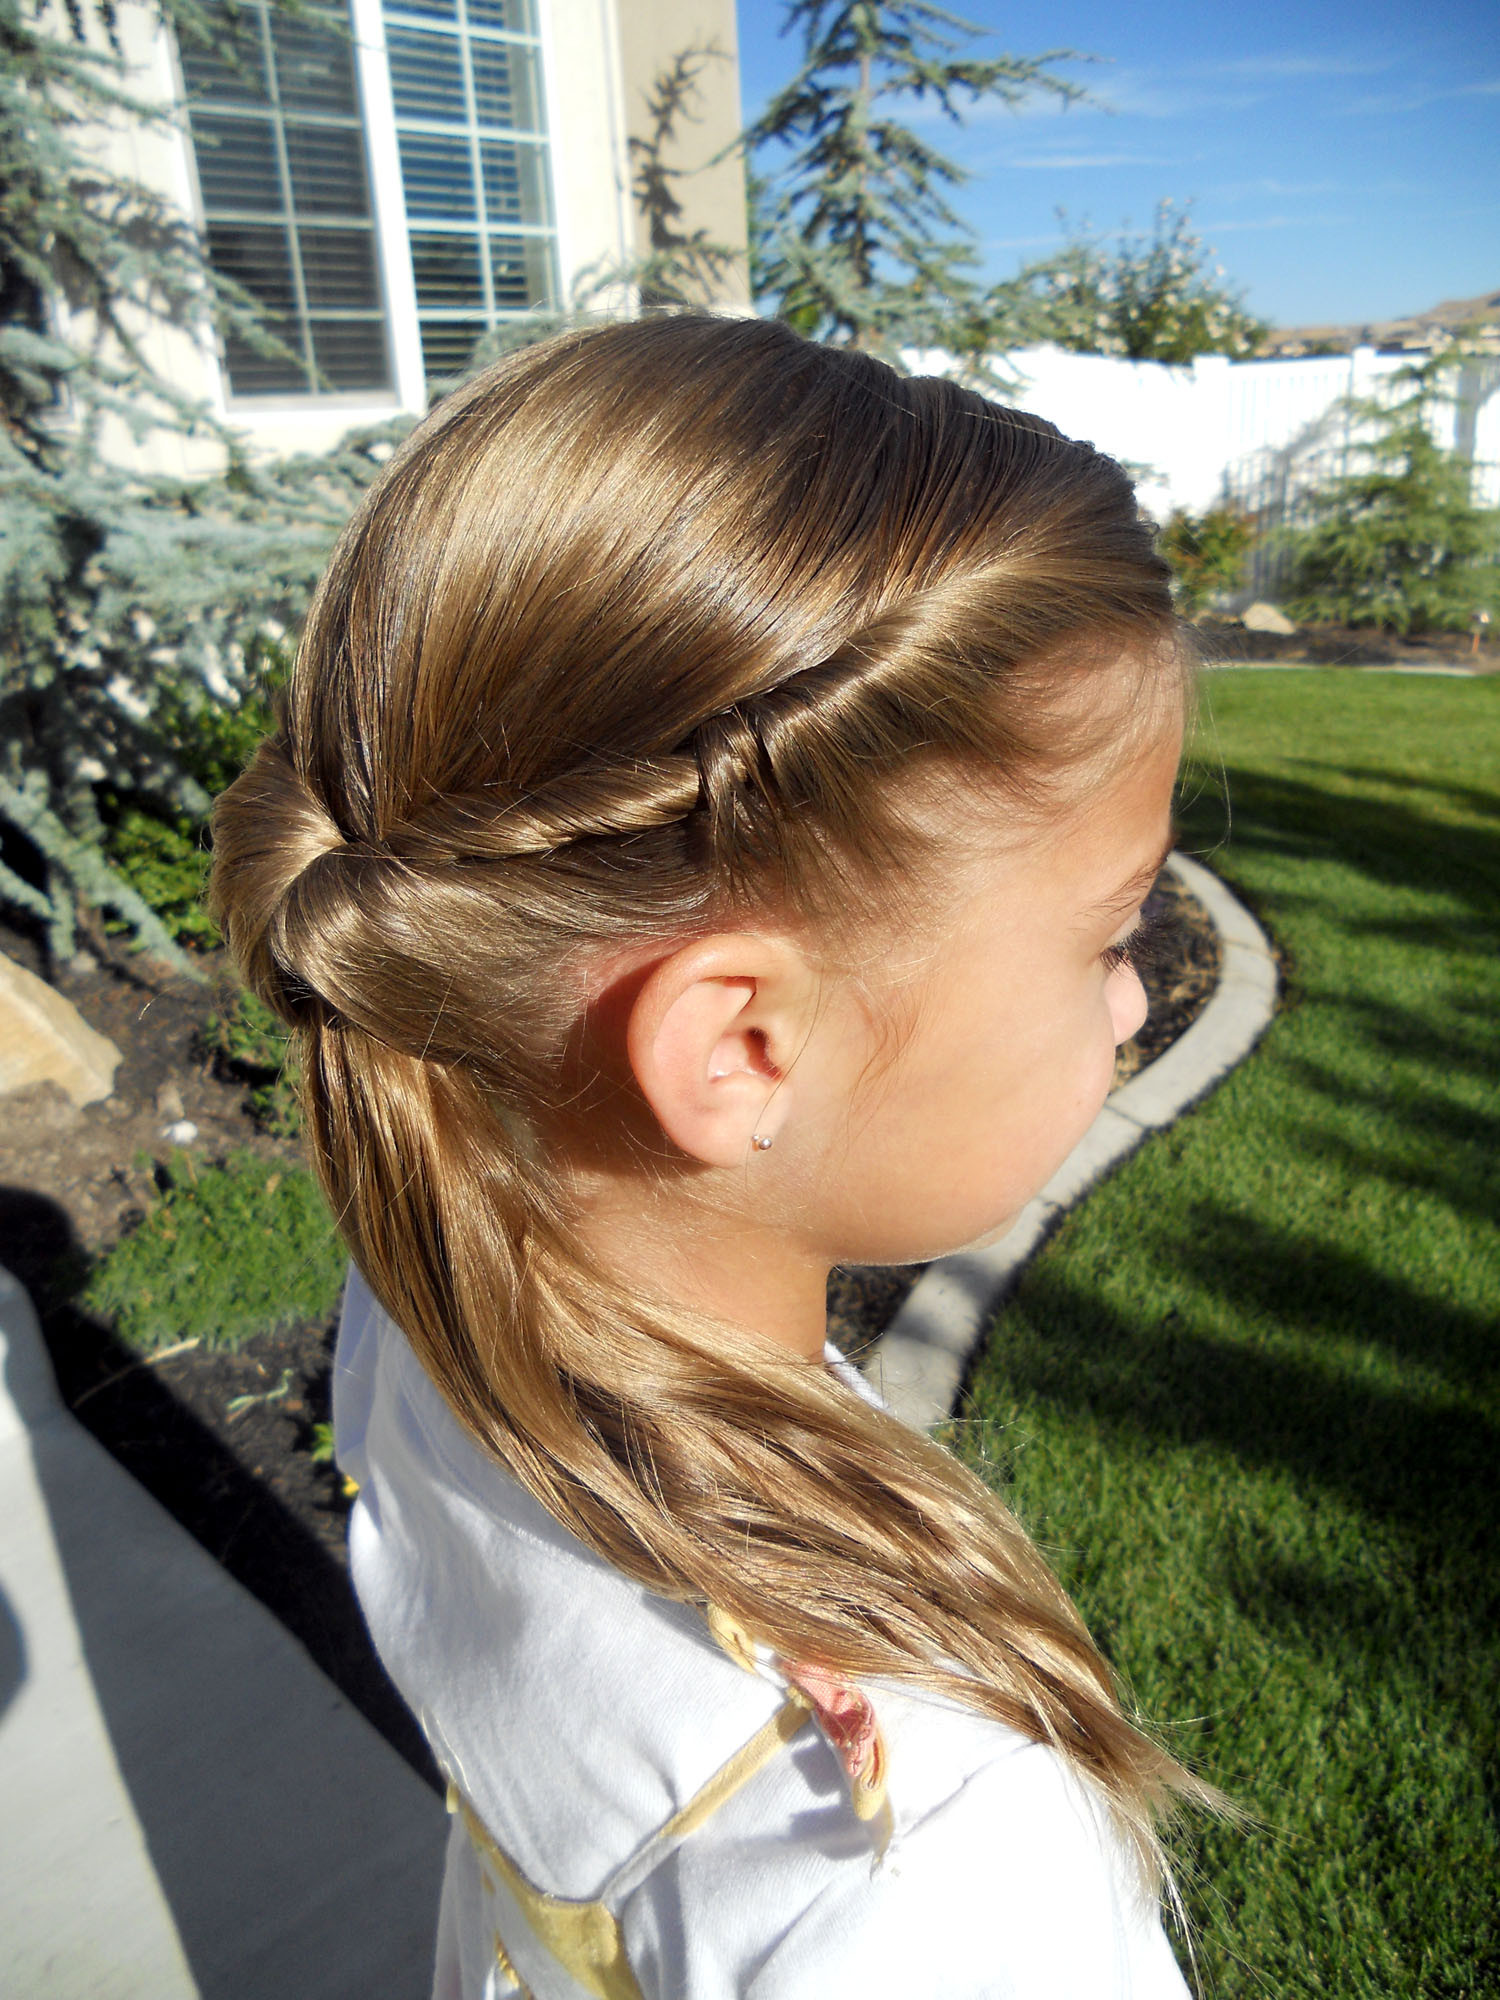 Best ideas about Twisty Hairstyles For Girls . Save or Pin Cute Twistback Flip Under Girls Hairstyles Now.